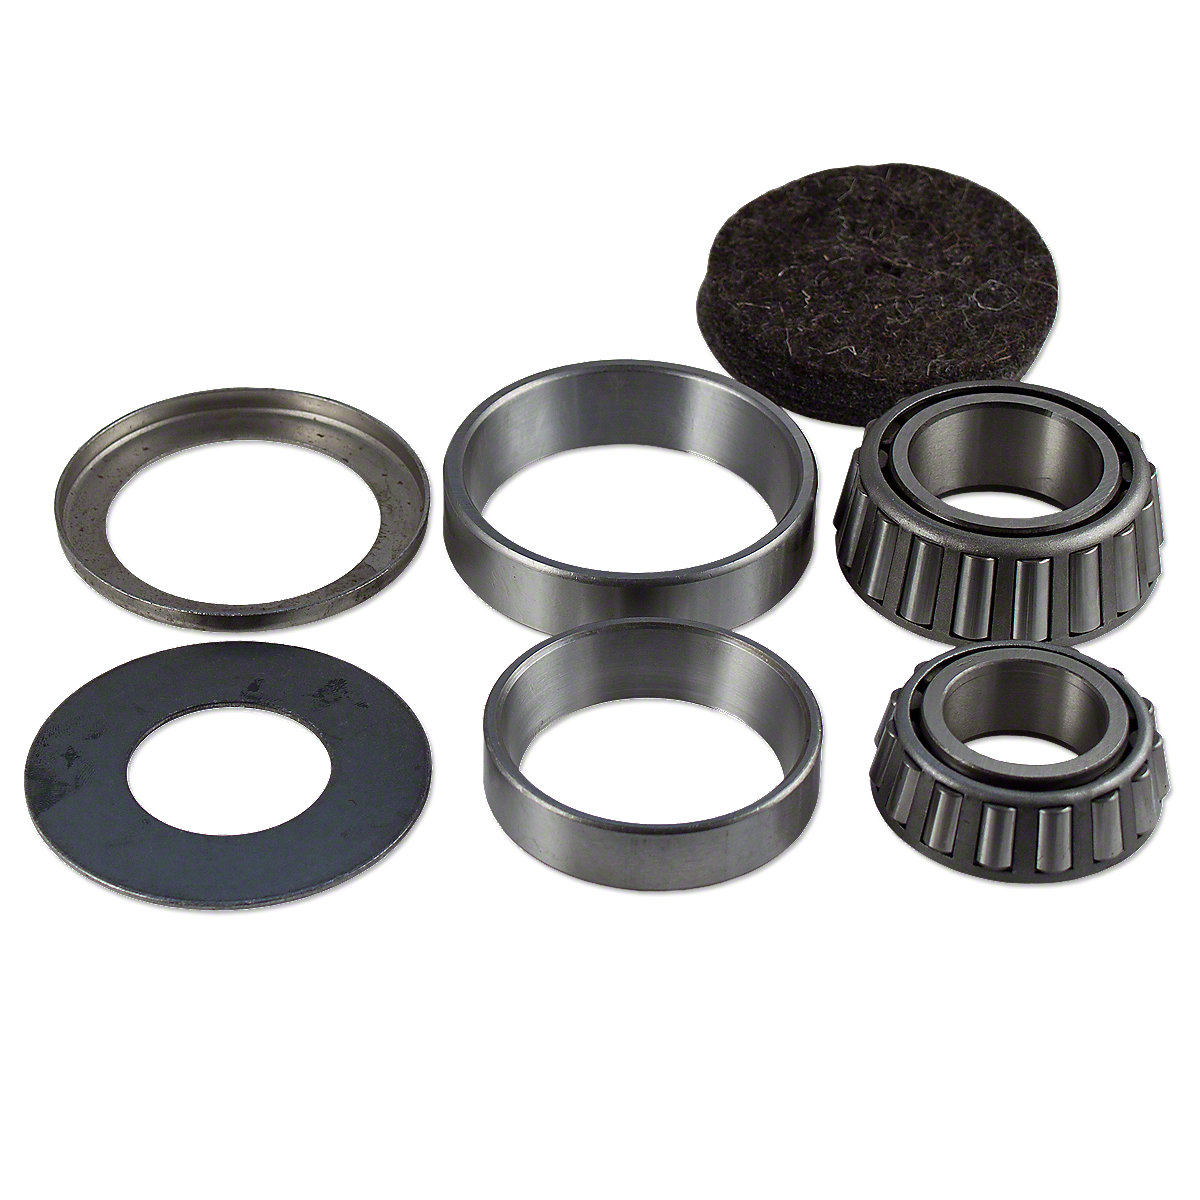 Front Wheel Bearing Kit For Allis Chalmers: D10, D12, D14, D15, D17, RC, WC, WD, WD45.